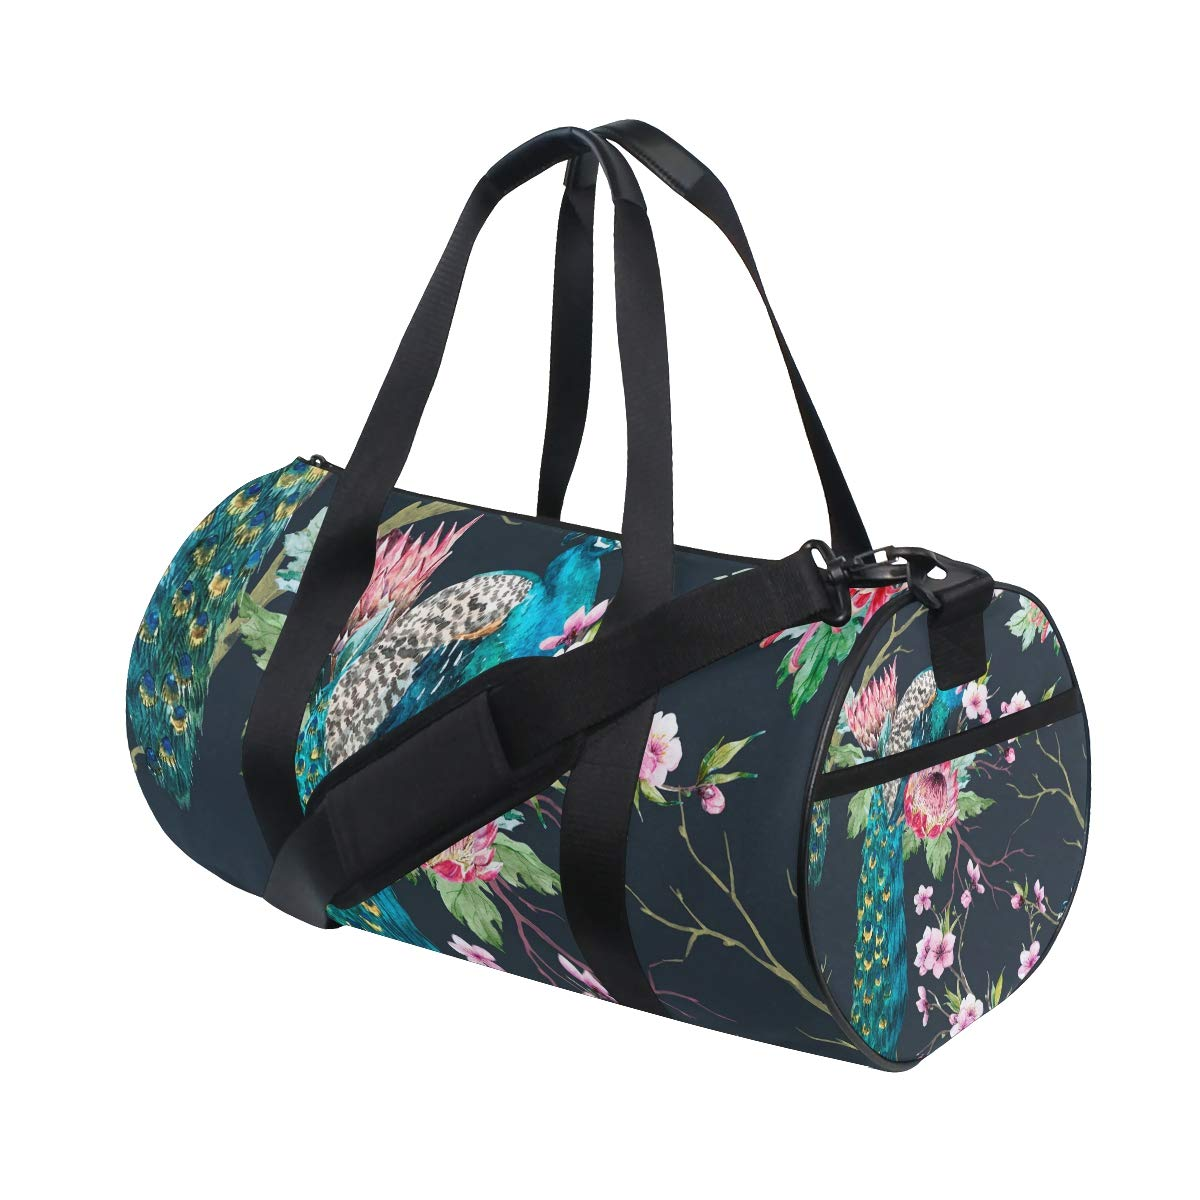 Peacock Sports Gym Bag Travel Duffel Bag with Pockets Luggage & Travel Gear Shoulder Strap Fitness Bag